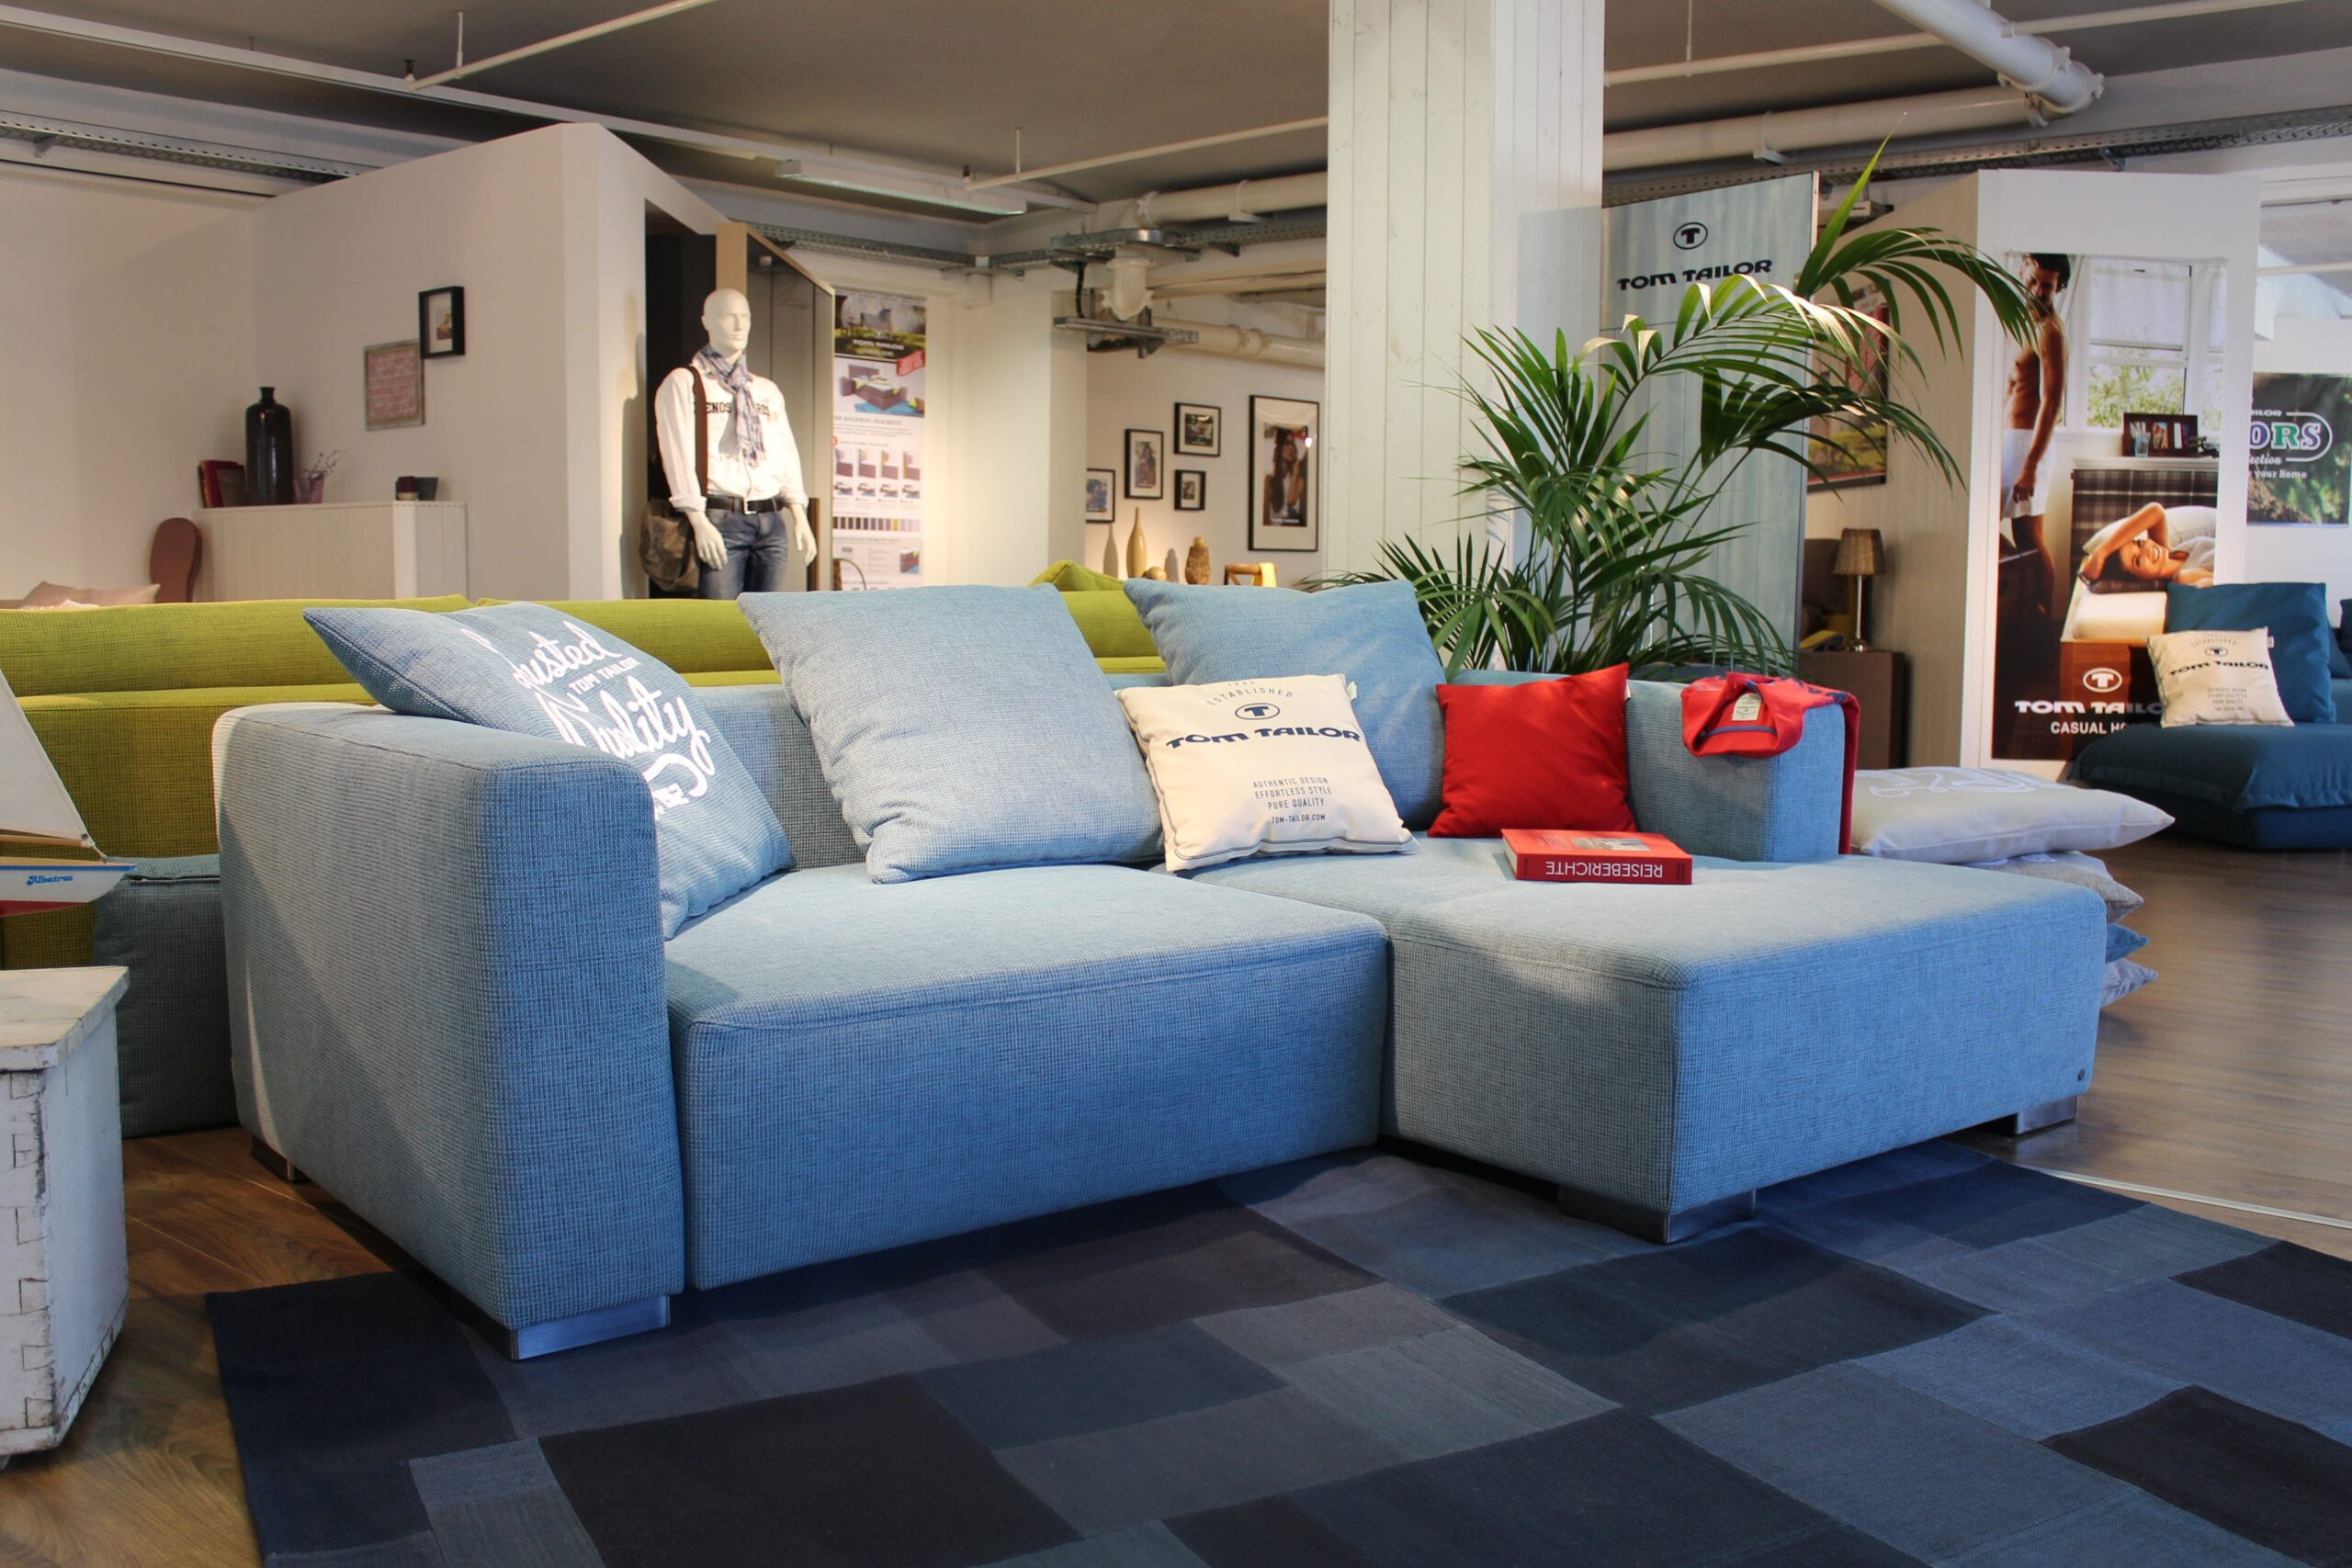 Full Size of Tom Tailor Sofa Heaven Style Colors Big S Otto Elements Nordic Pure Couch Chic 10 Elegant Englisches Mit Elektrischer Sitztiefenverstellung 2 Sitzer Sofa Sofa Tom Tailor